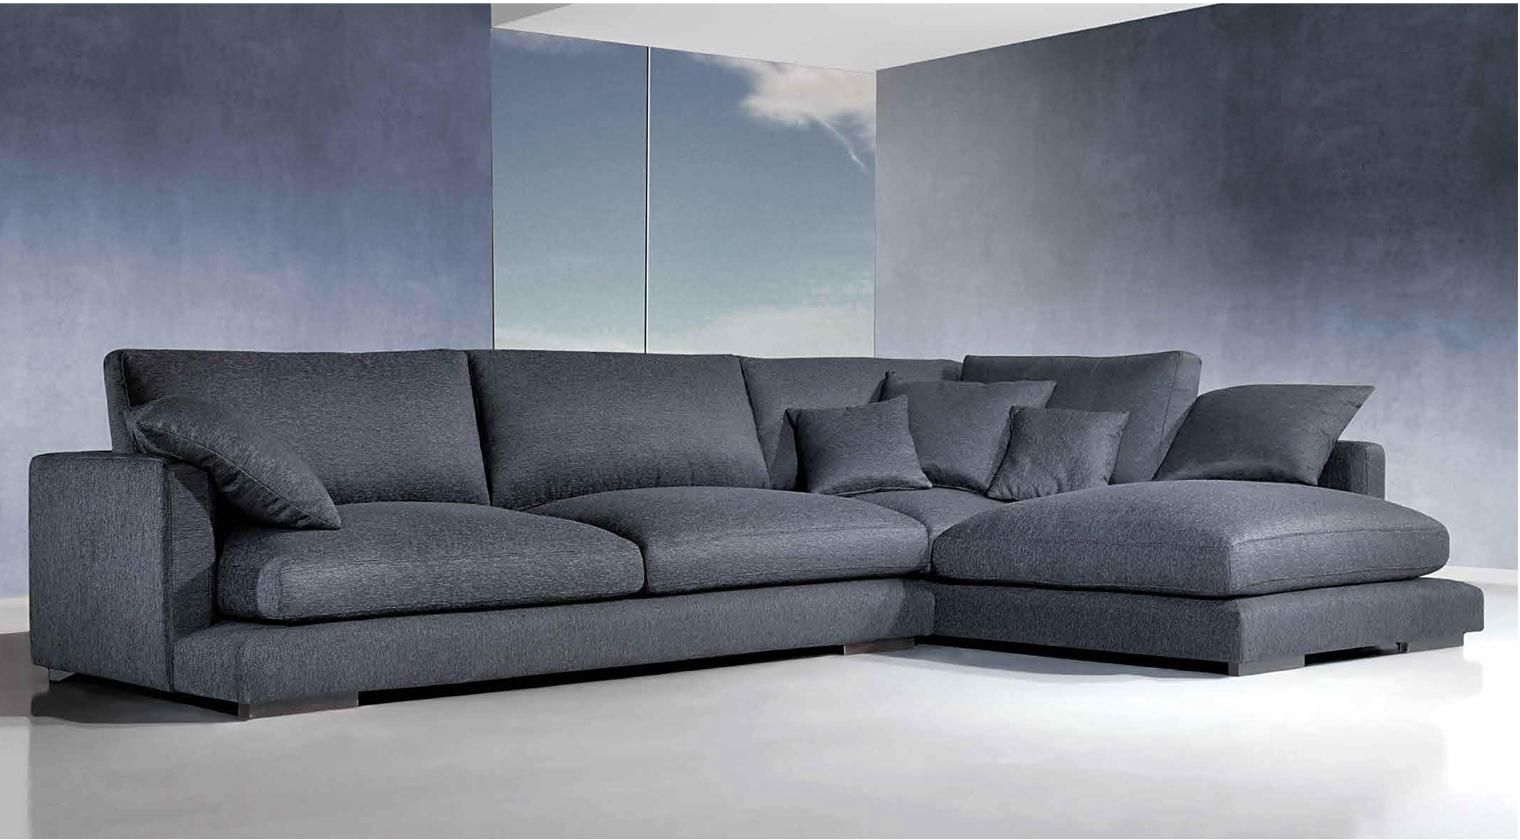 Sofas cheslong baratos en barcelona for Sofas cheslong baratos